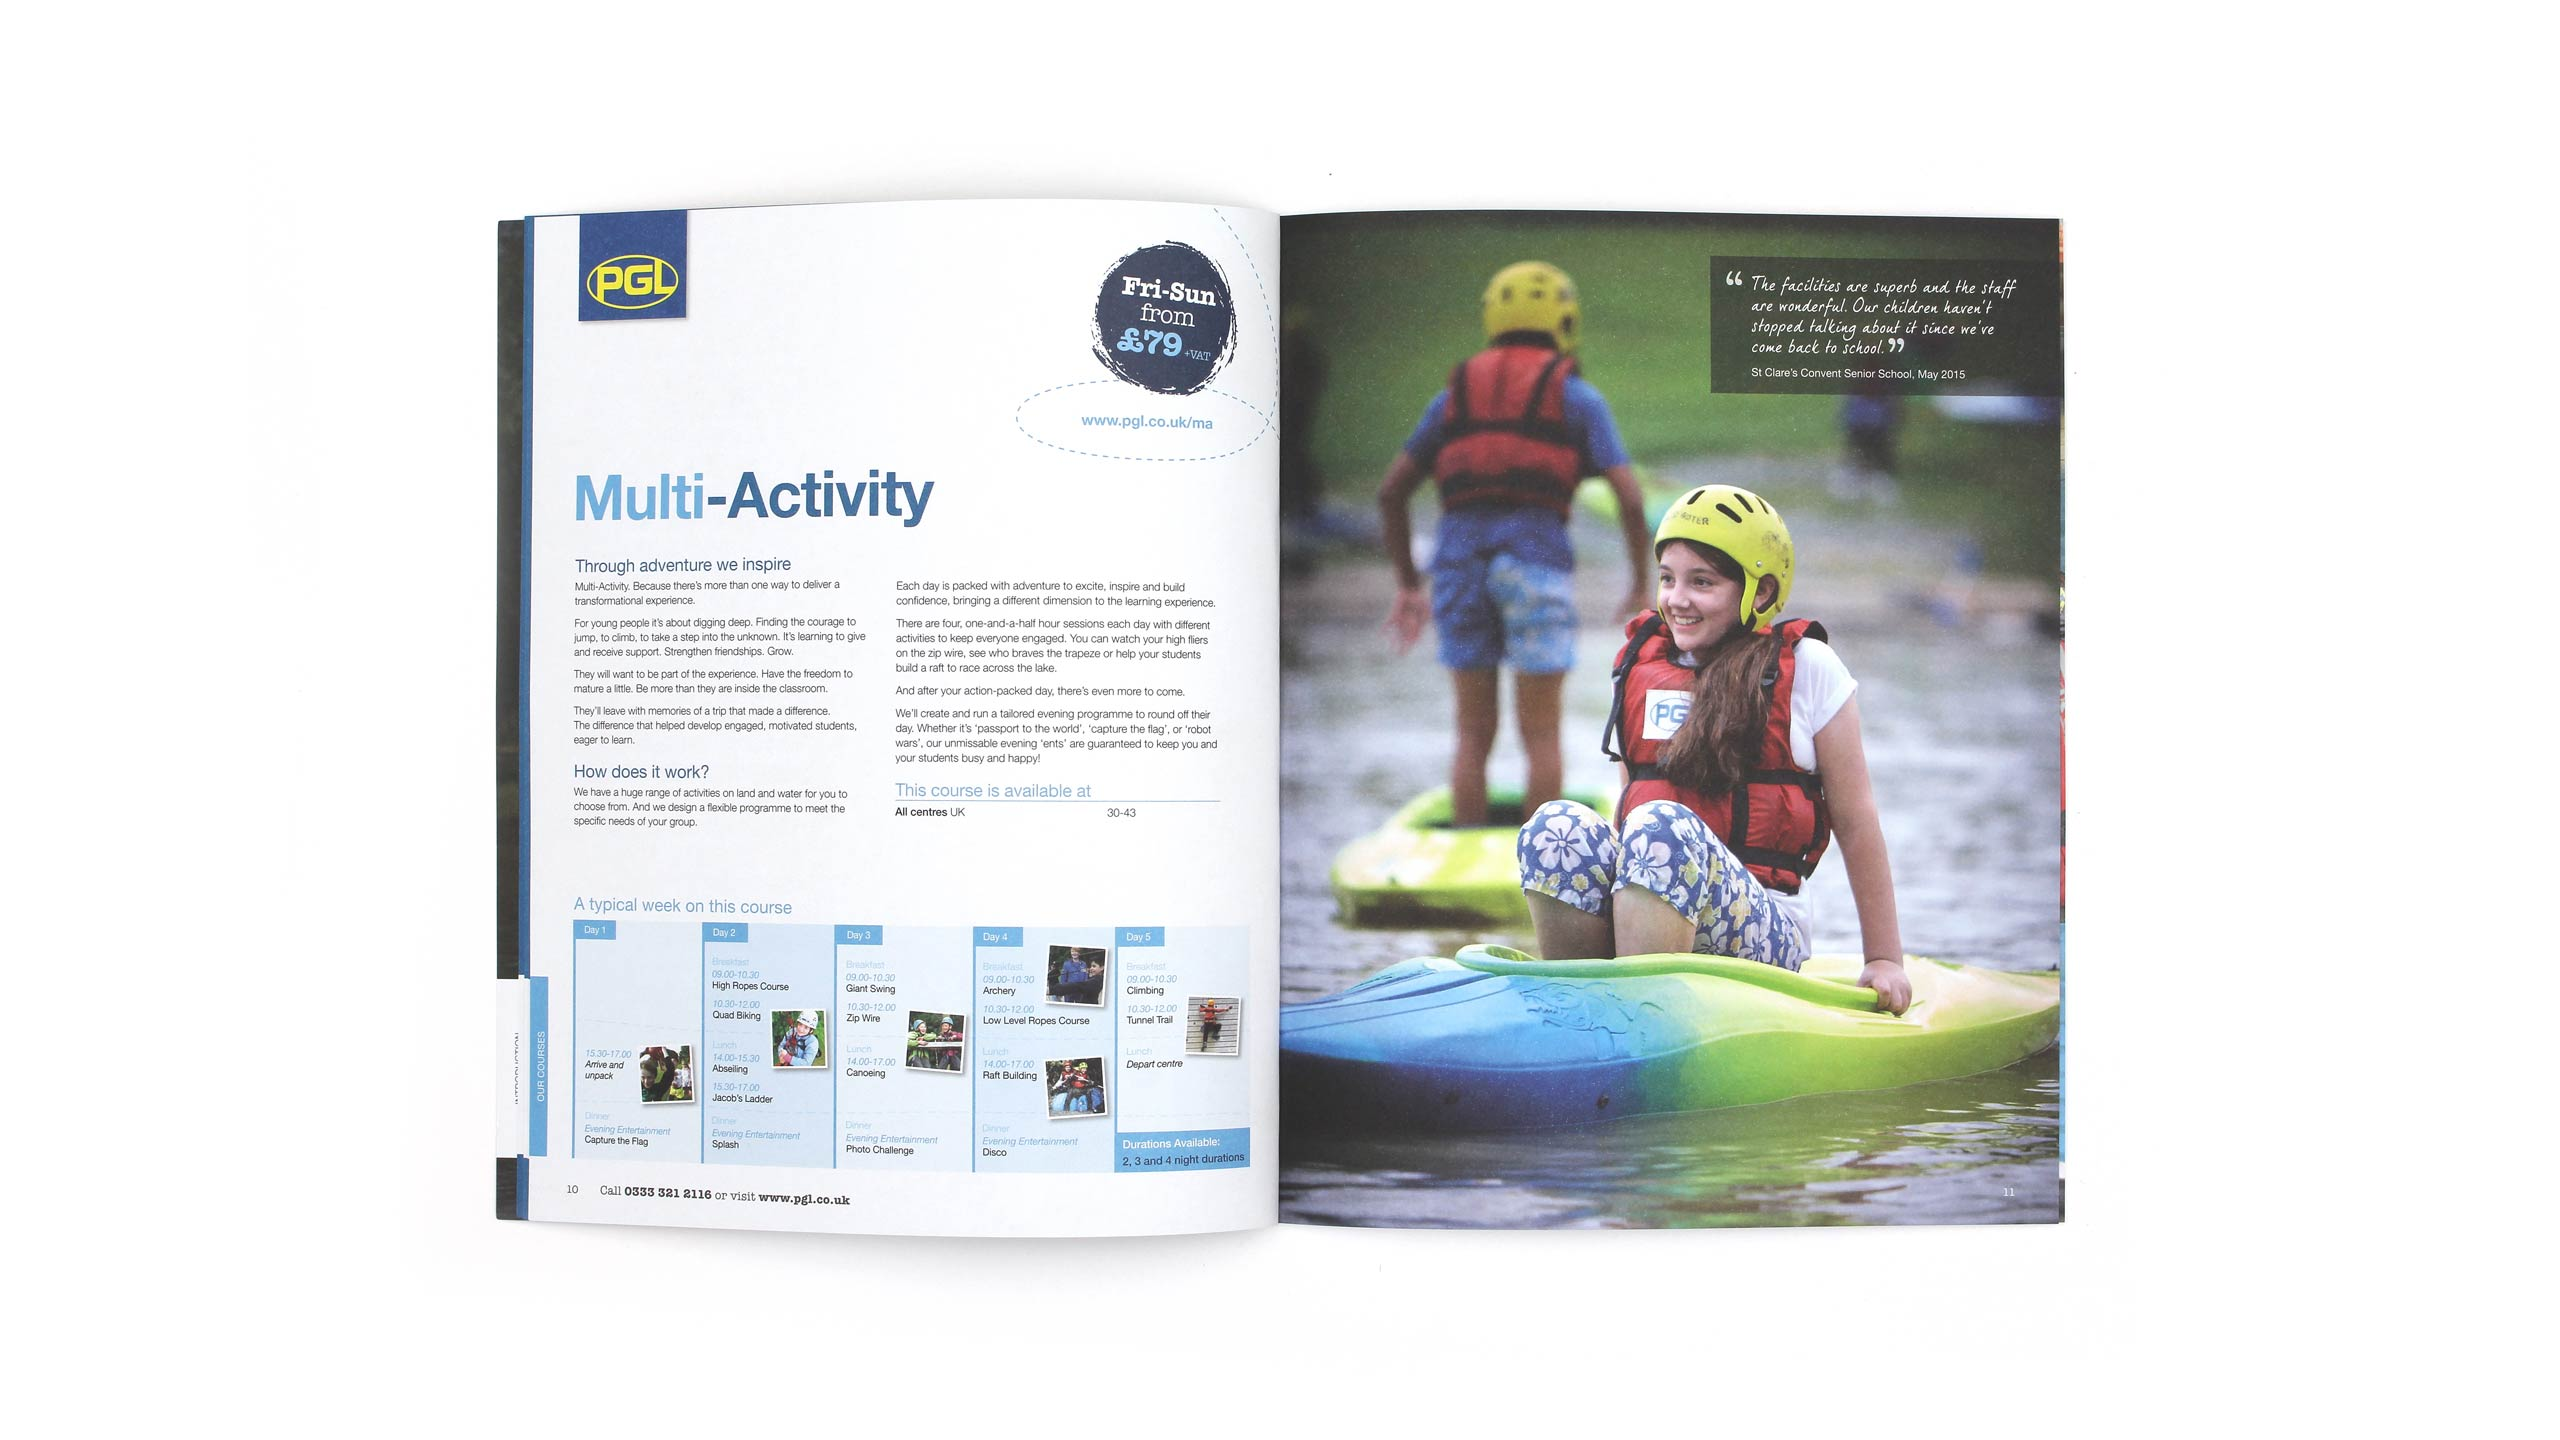 school adventure brochure design multi activity pages on white pgl travel